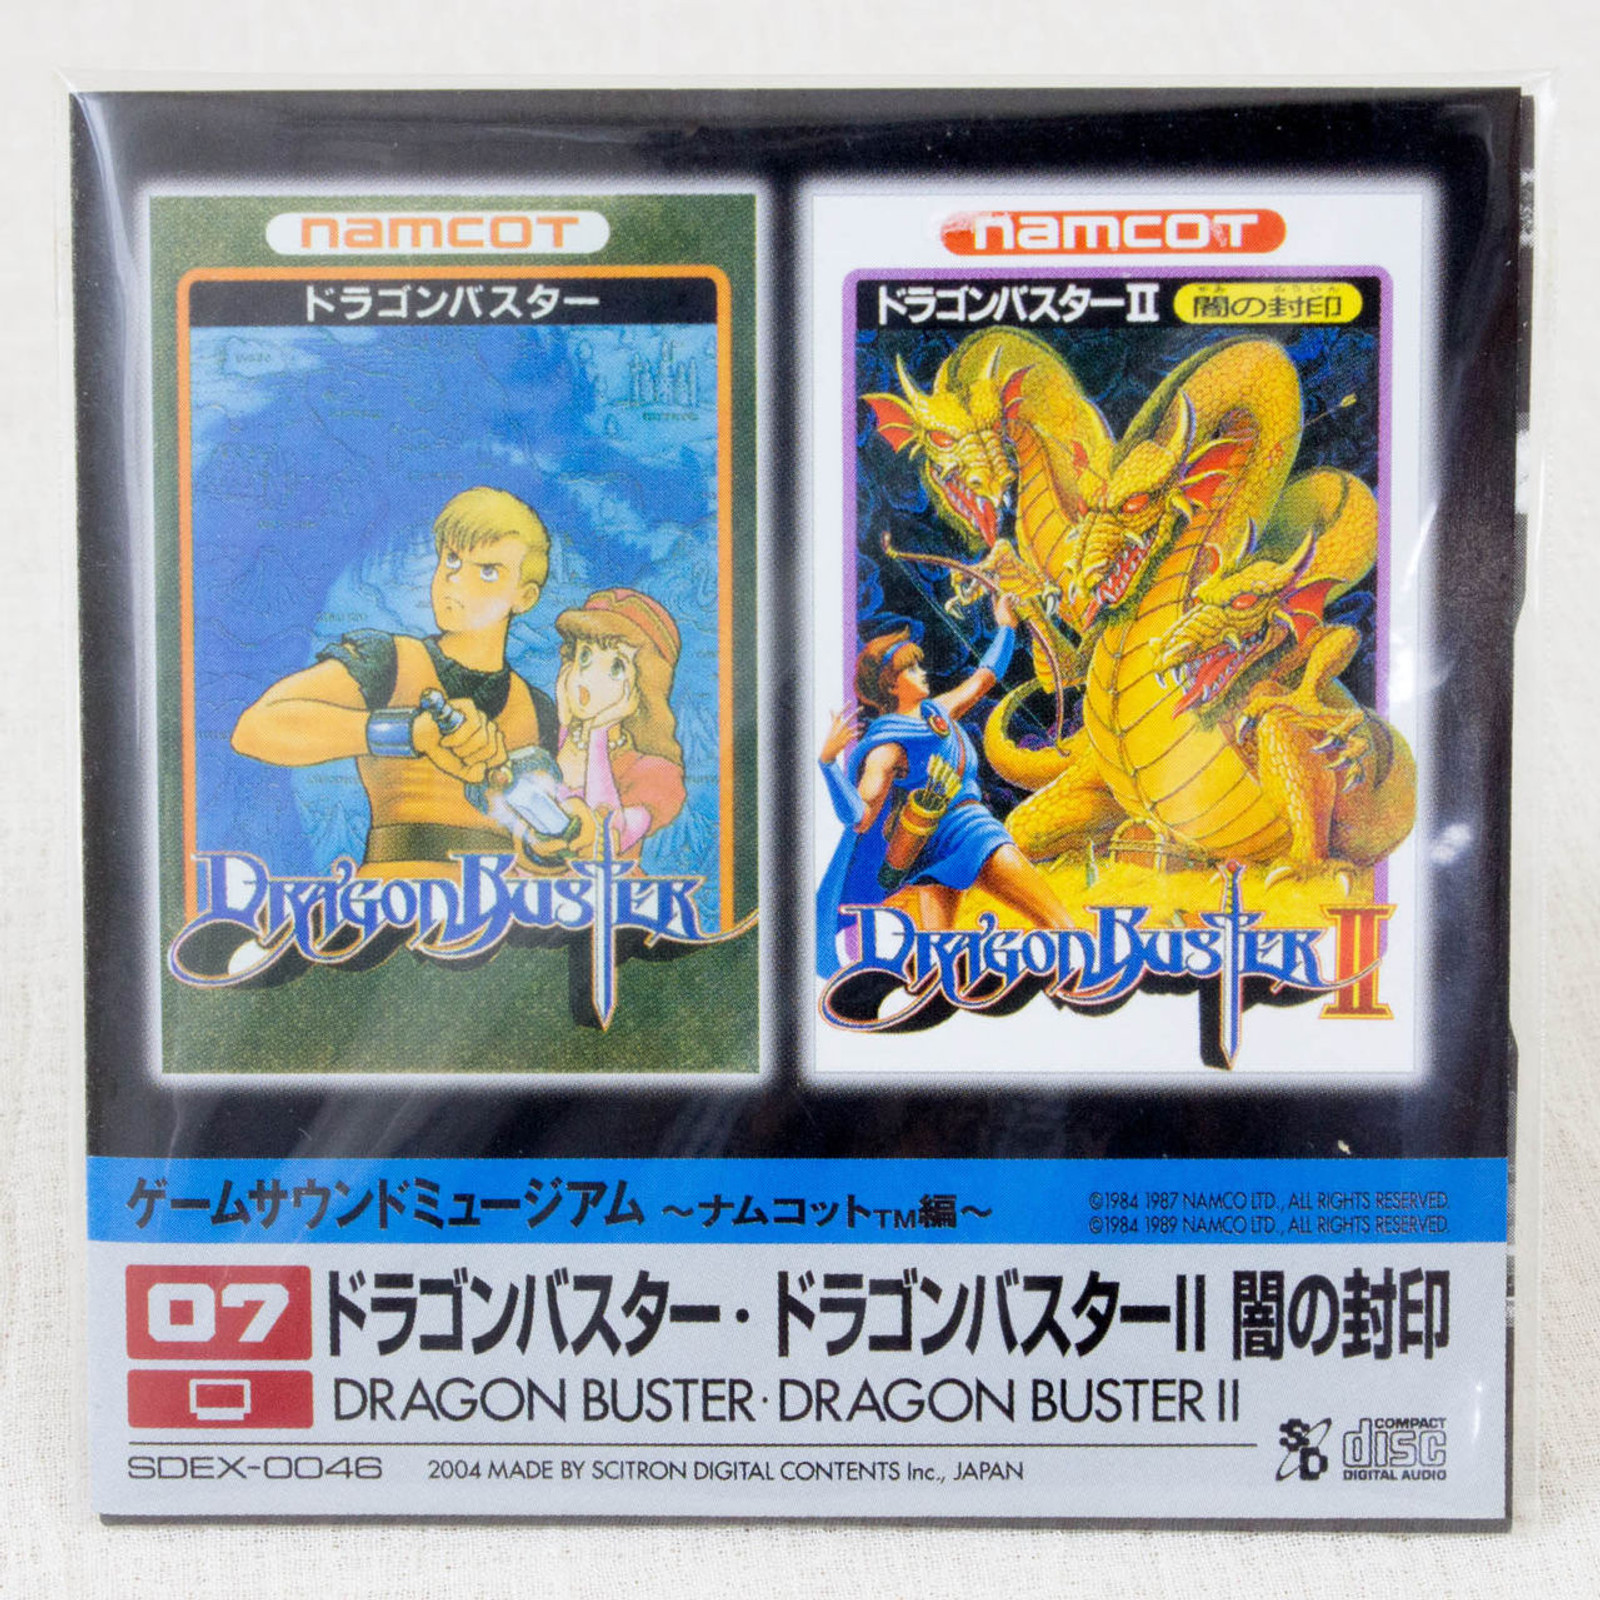 Dragon Buster Game Sound Museum Namco #07 Music 8cm CD JAPAN FAMICOM NINTNEDO